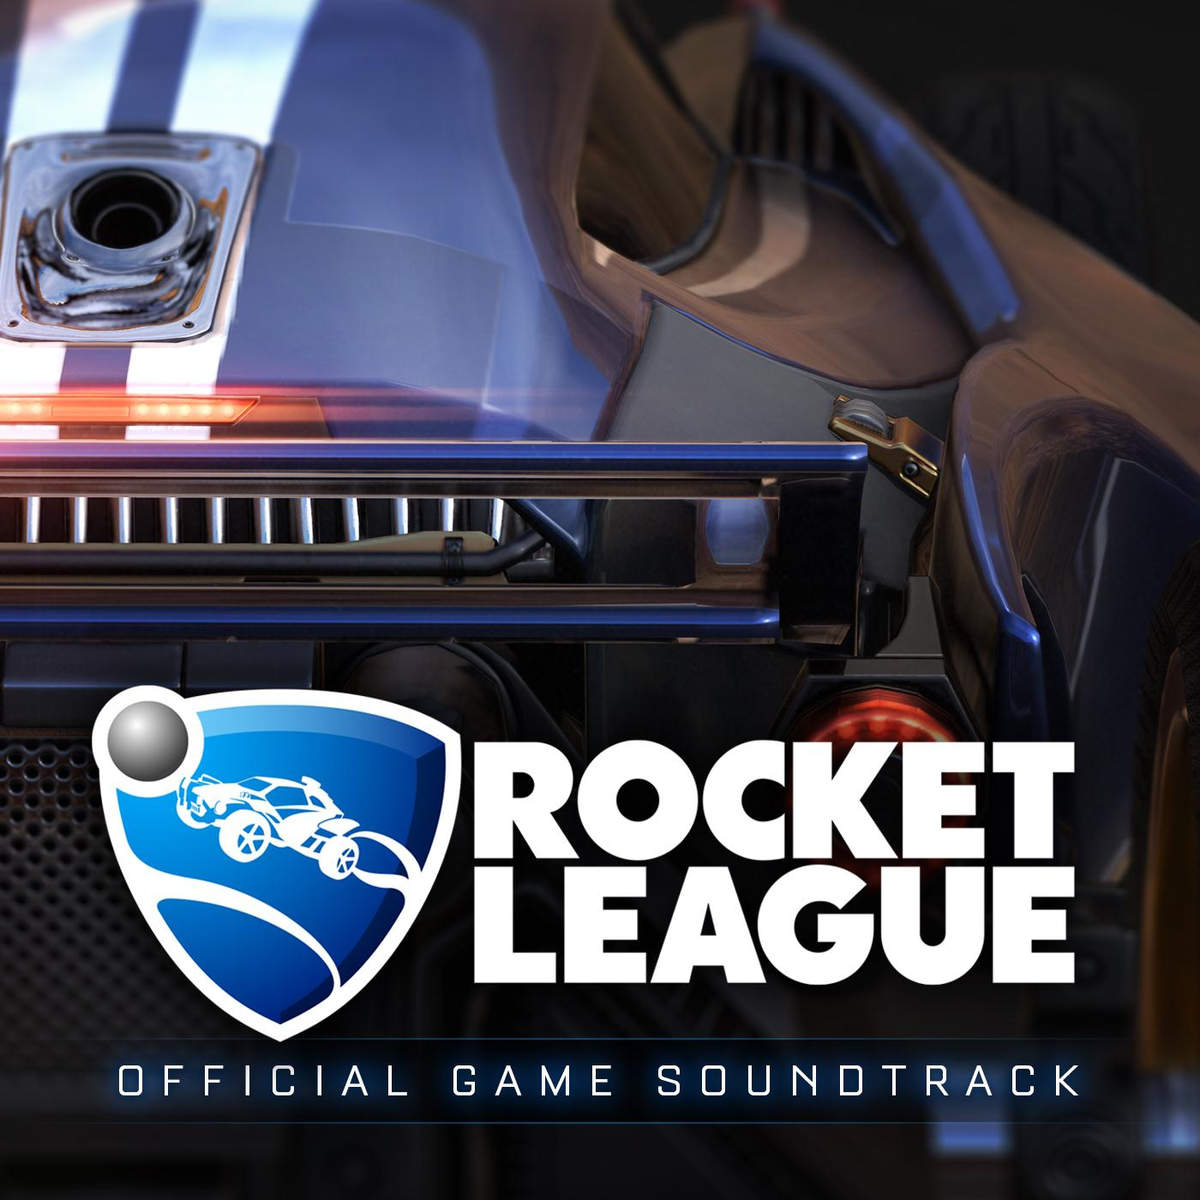 Rocket_League_Official_Game_Soundtrack__cover1200x1200.jpg